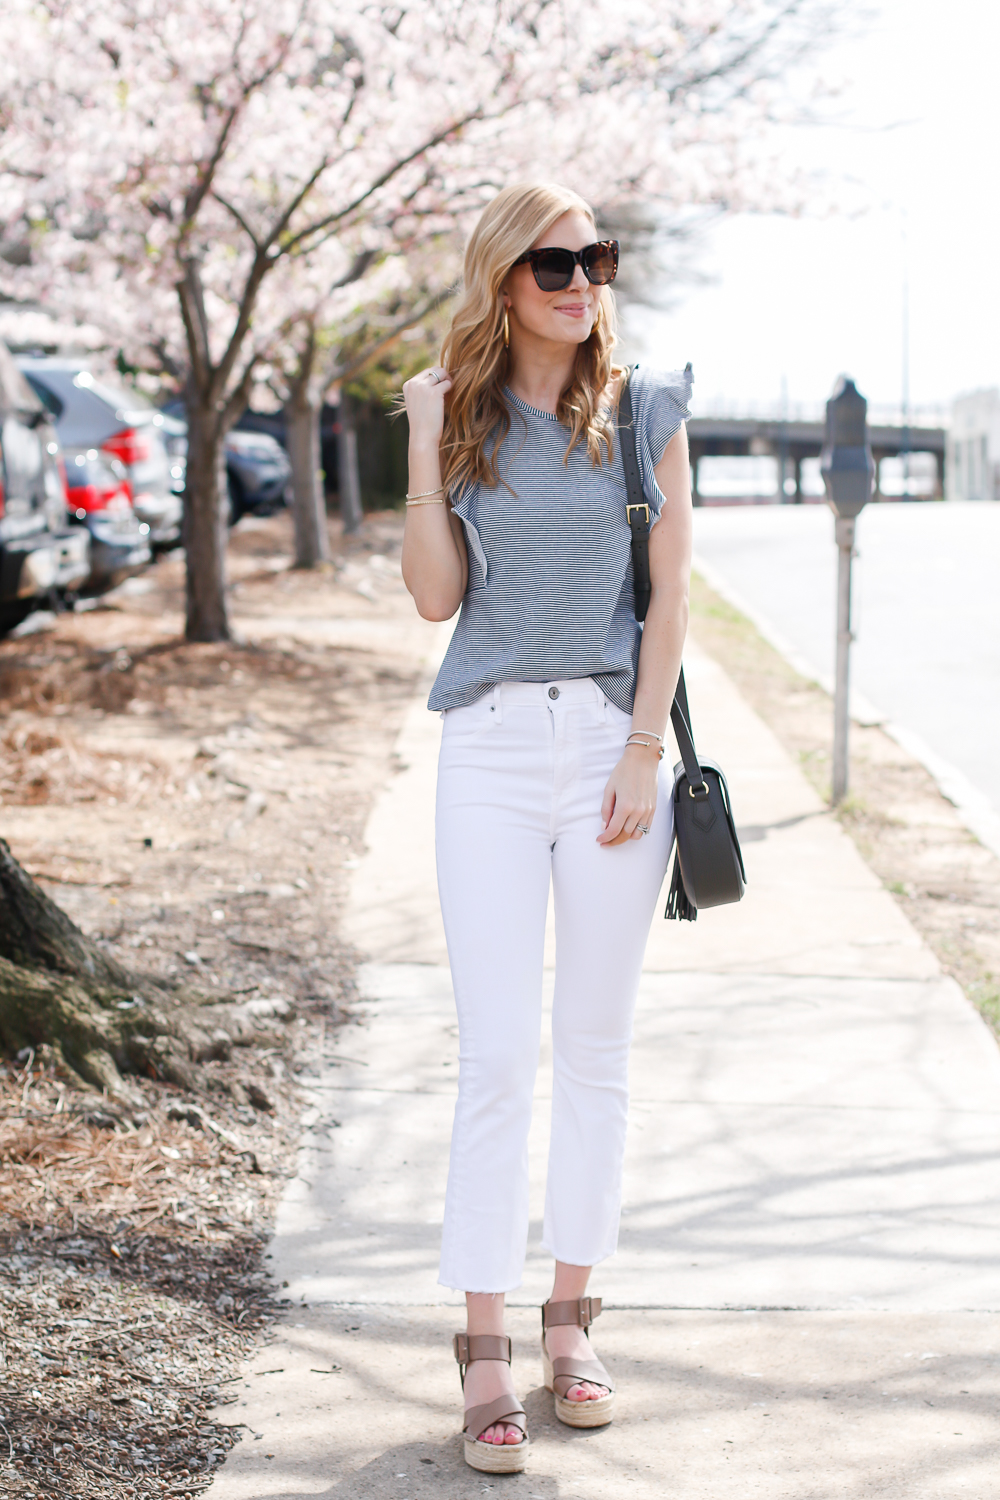 ab42c283b02 Ruffle Top & White Jeans   Life with Emily